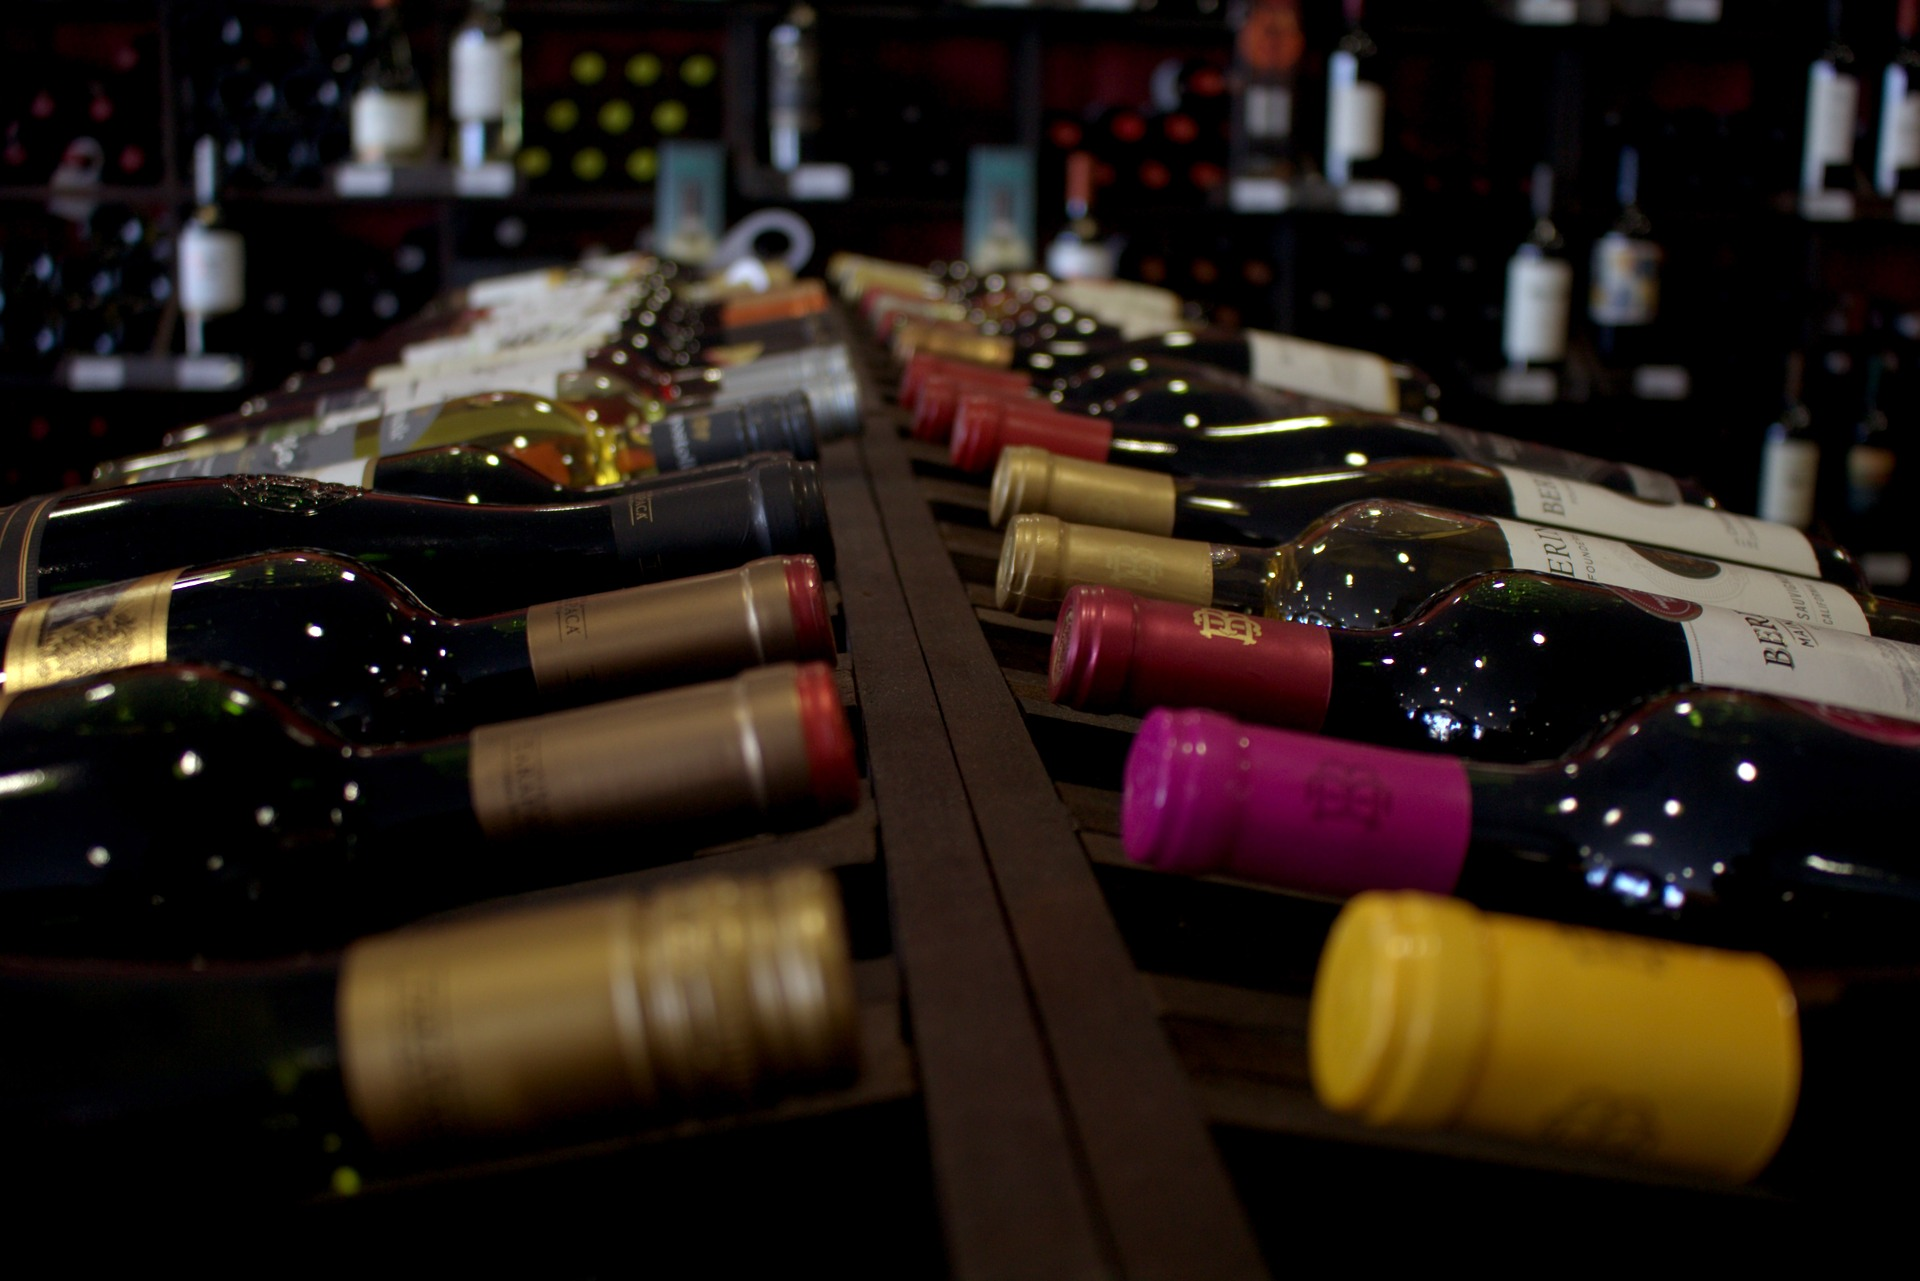 Rioja wines are famous around the world